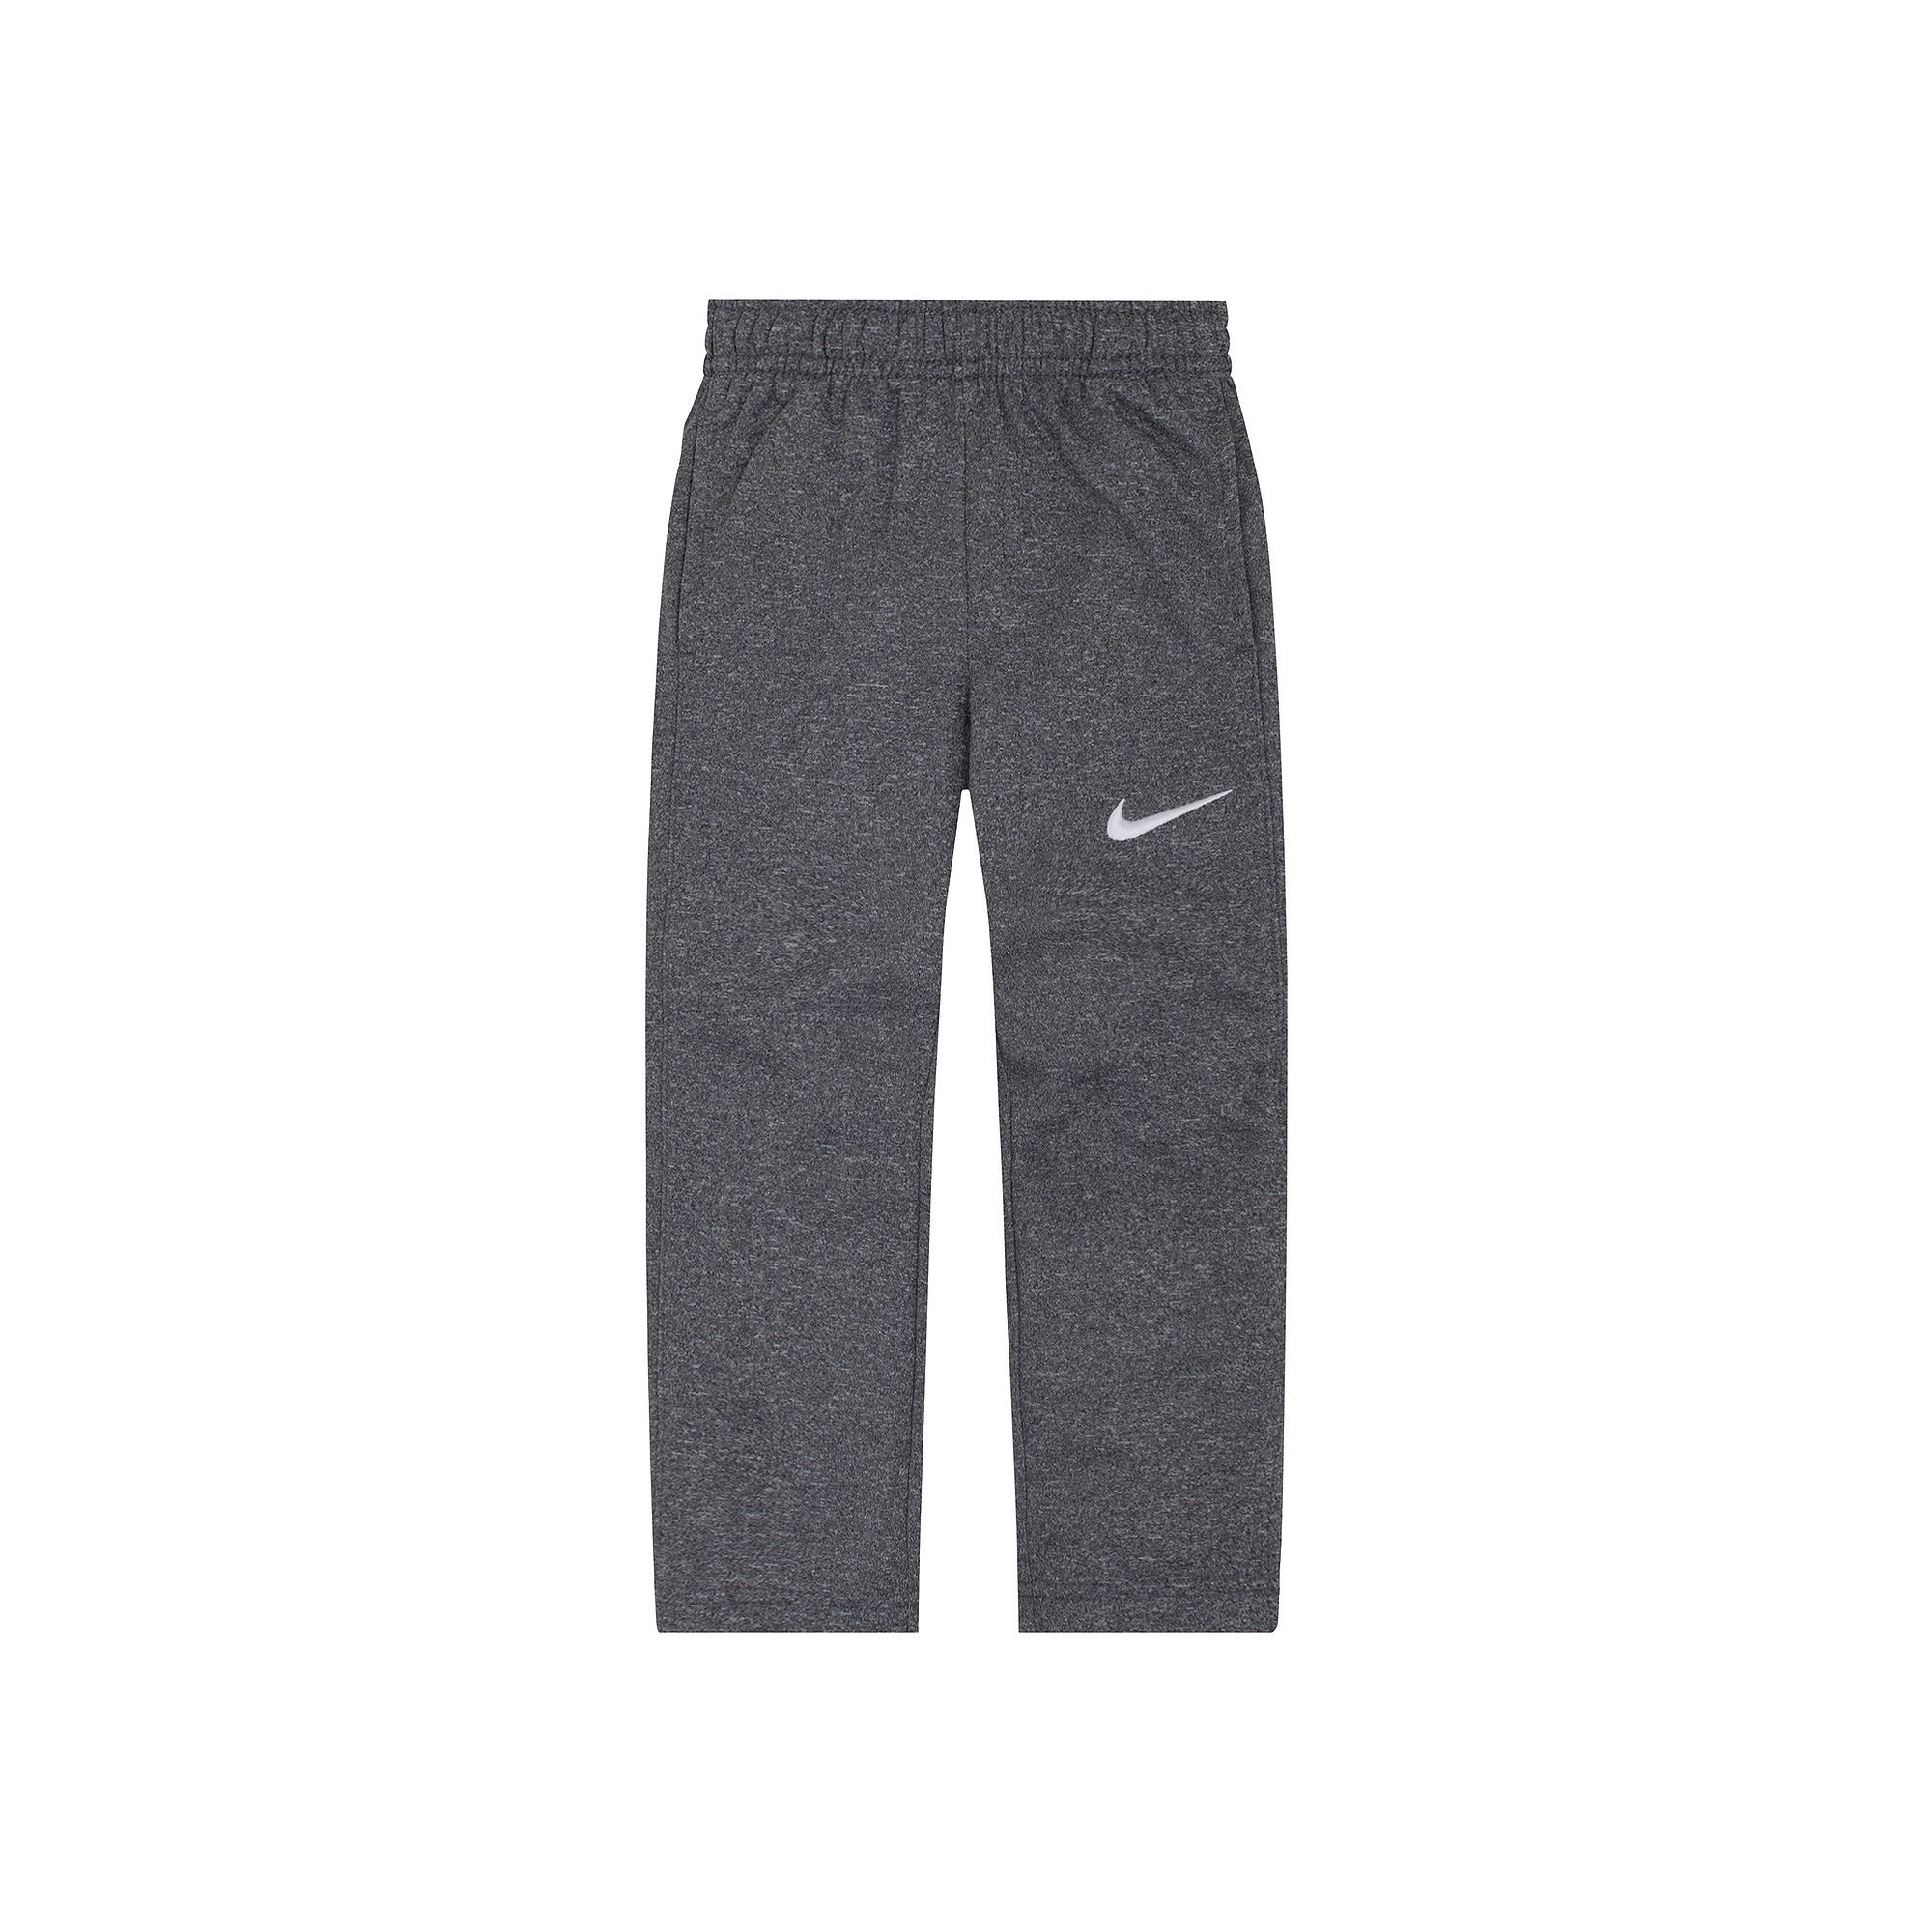 Toddler Boy Nike Therma-FIT Fleece Pant, Size: 4T, Grey Other